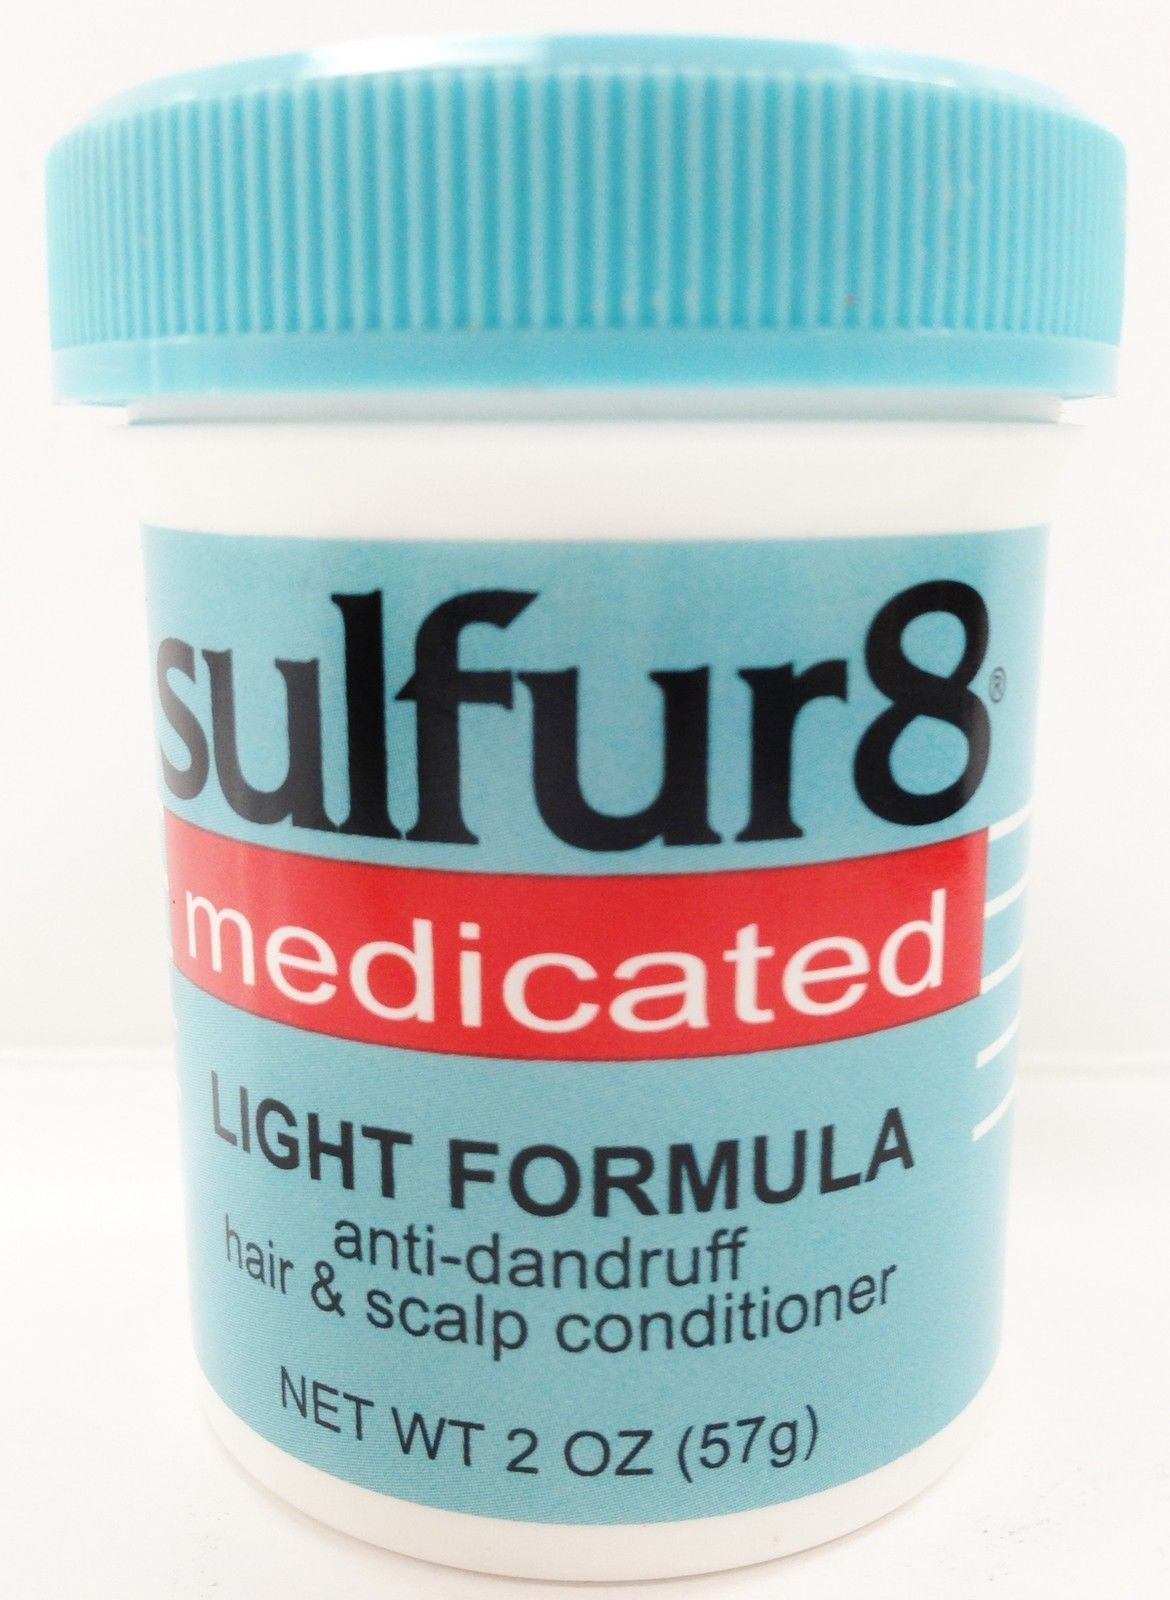 SULFUR 8 MEDICATED LIGHT FORMULA ANTI DANDRUFF HAIR & SCALP CONDITIONER 2oz